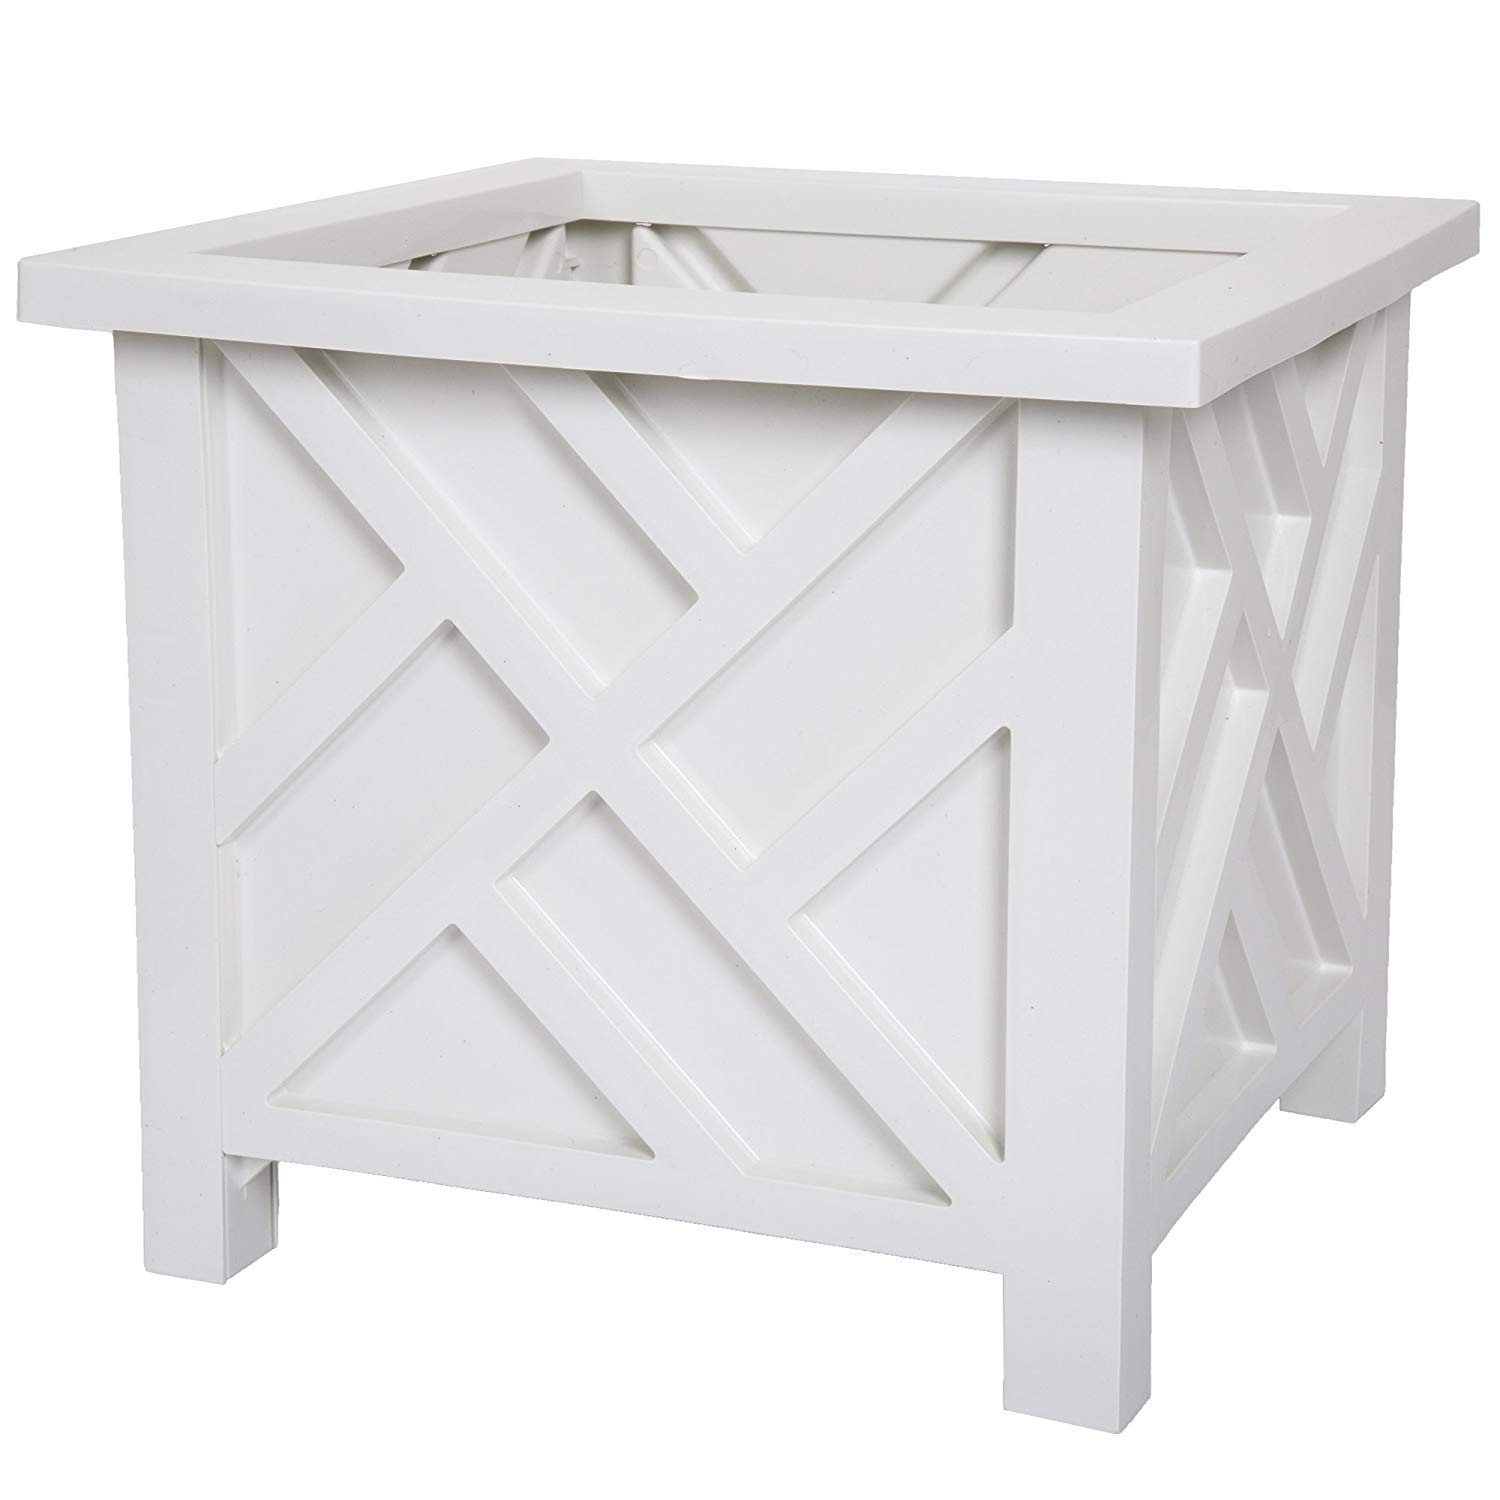 Pure Garden Plant Holder – Planter Container Box for Garden, Patio, and Lawn – Outdoor Decor by White (Pack of 2)